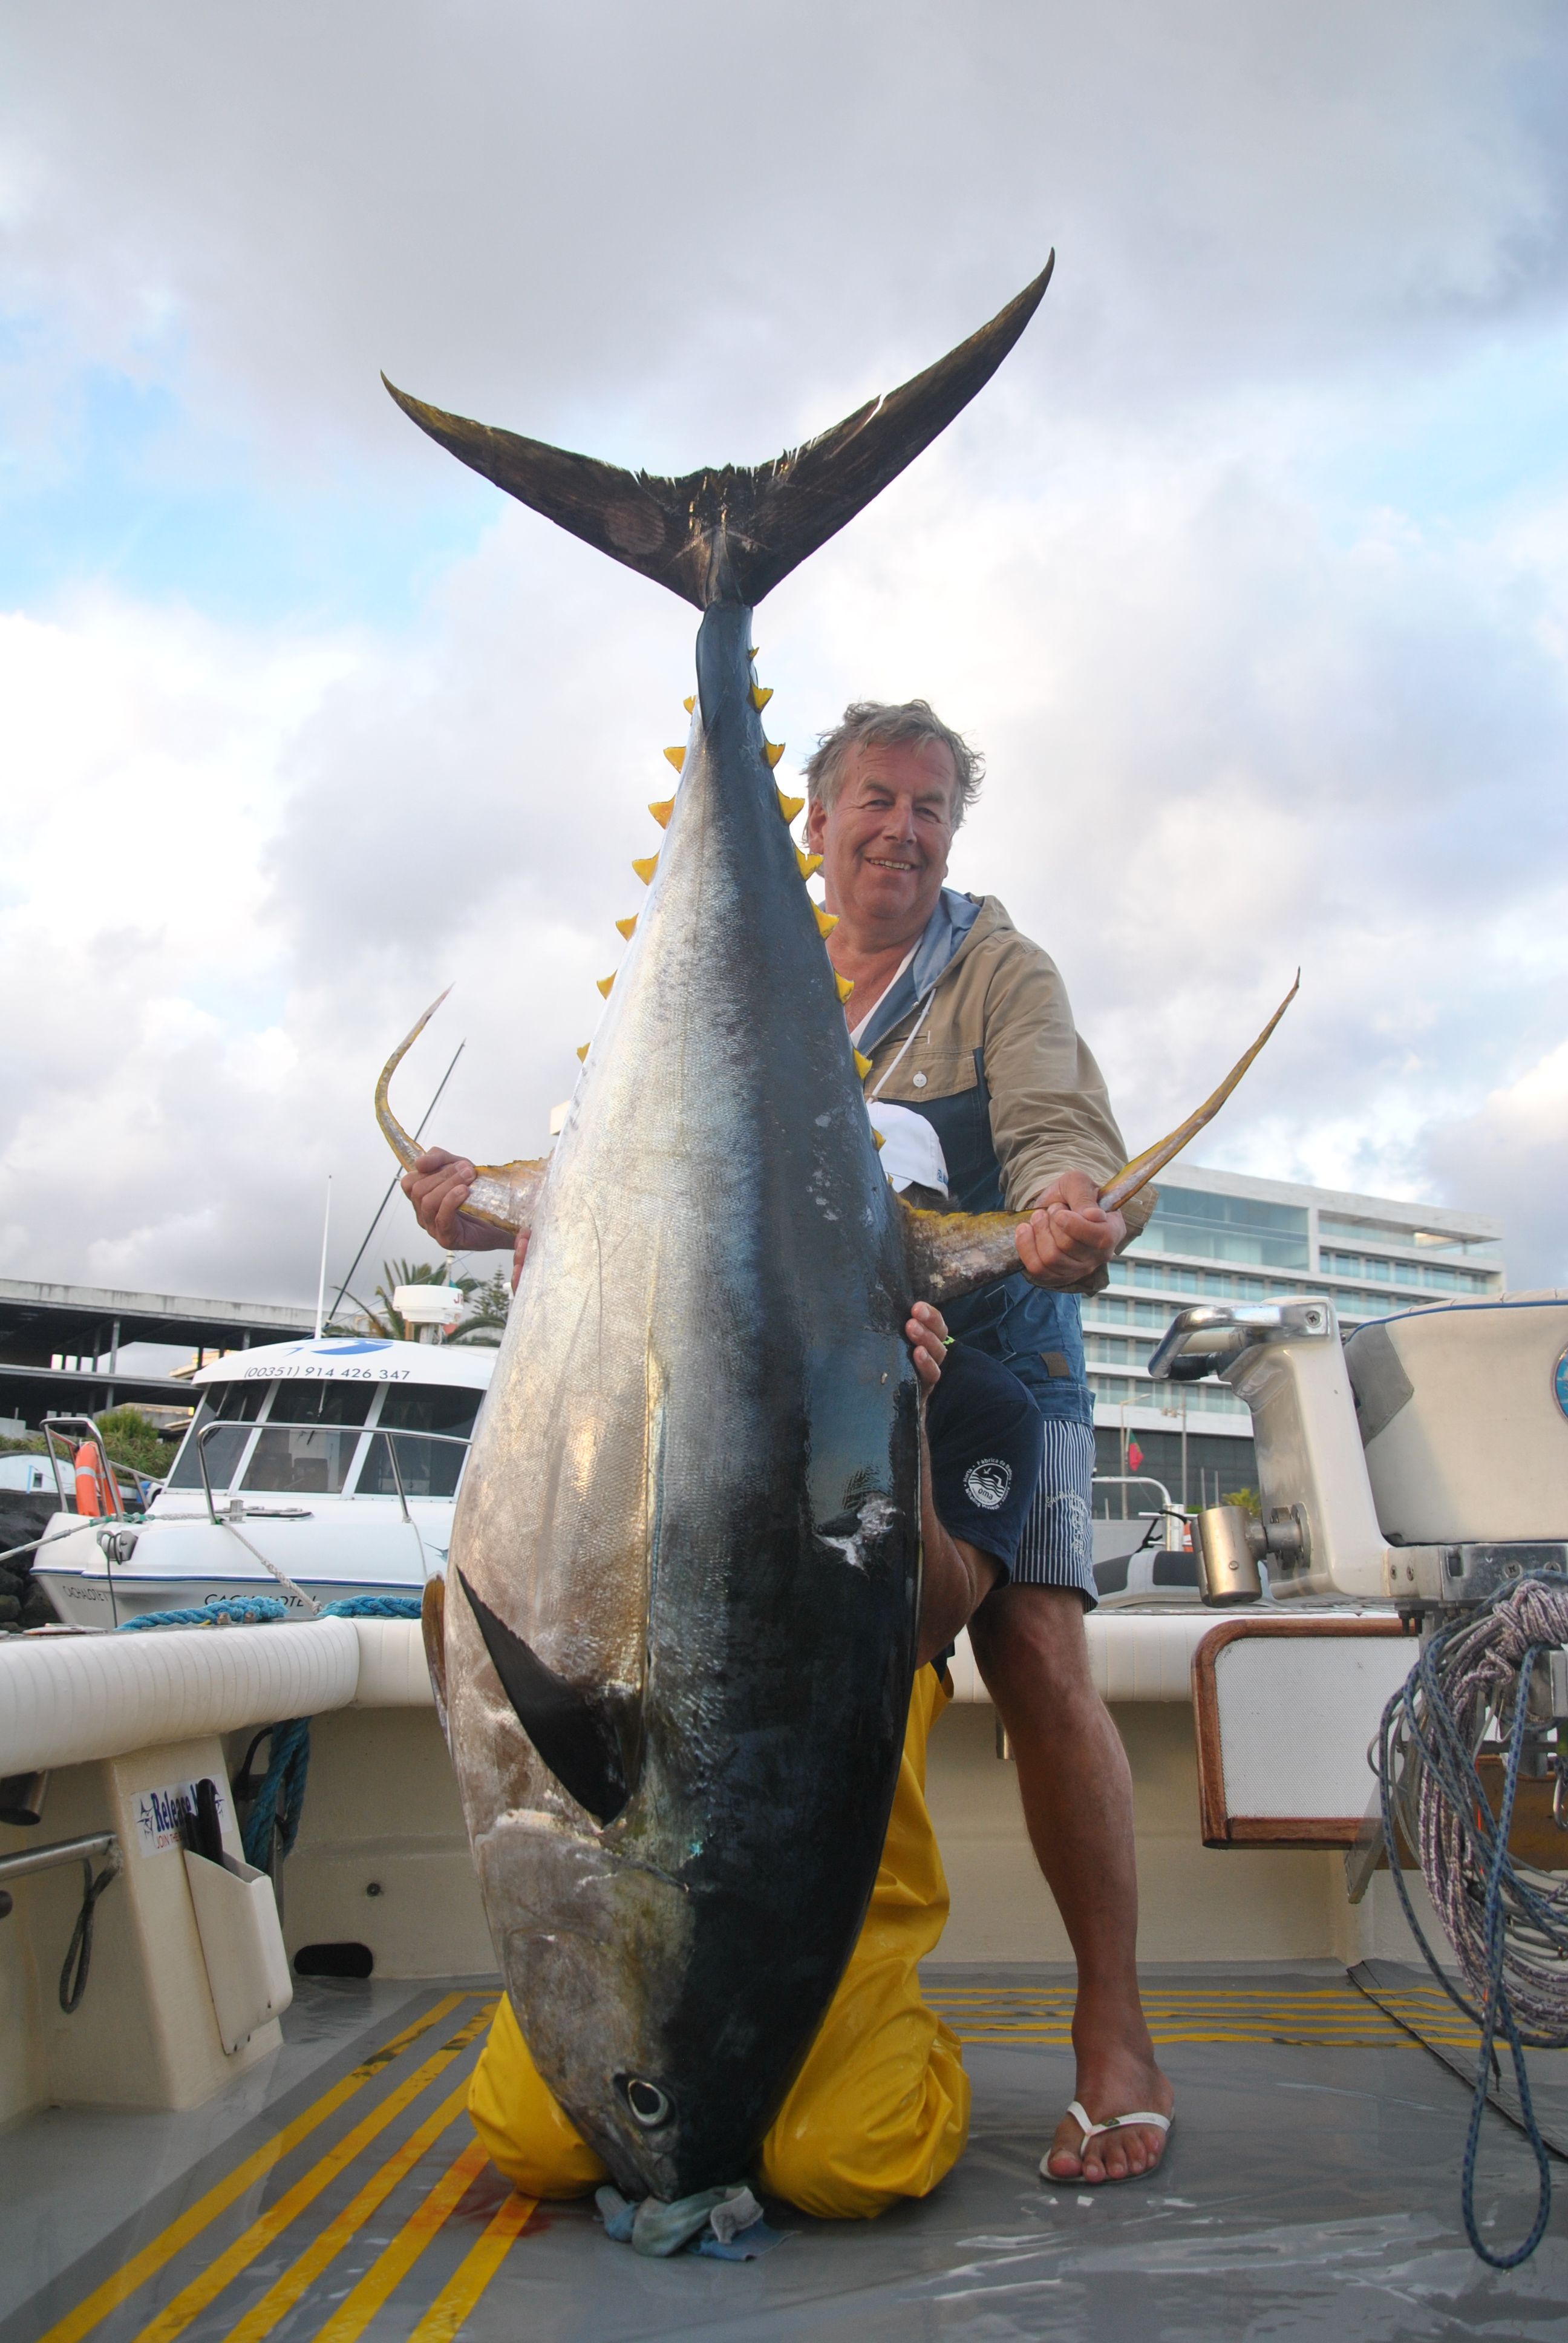 270 pounds Yellowfin tuna for the luckman Mr. Michel. June 14